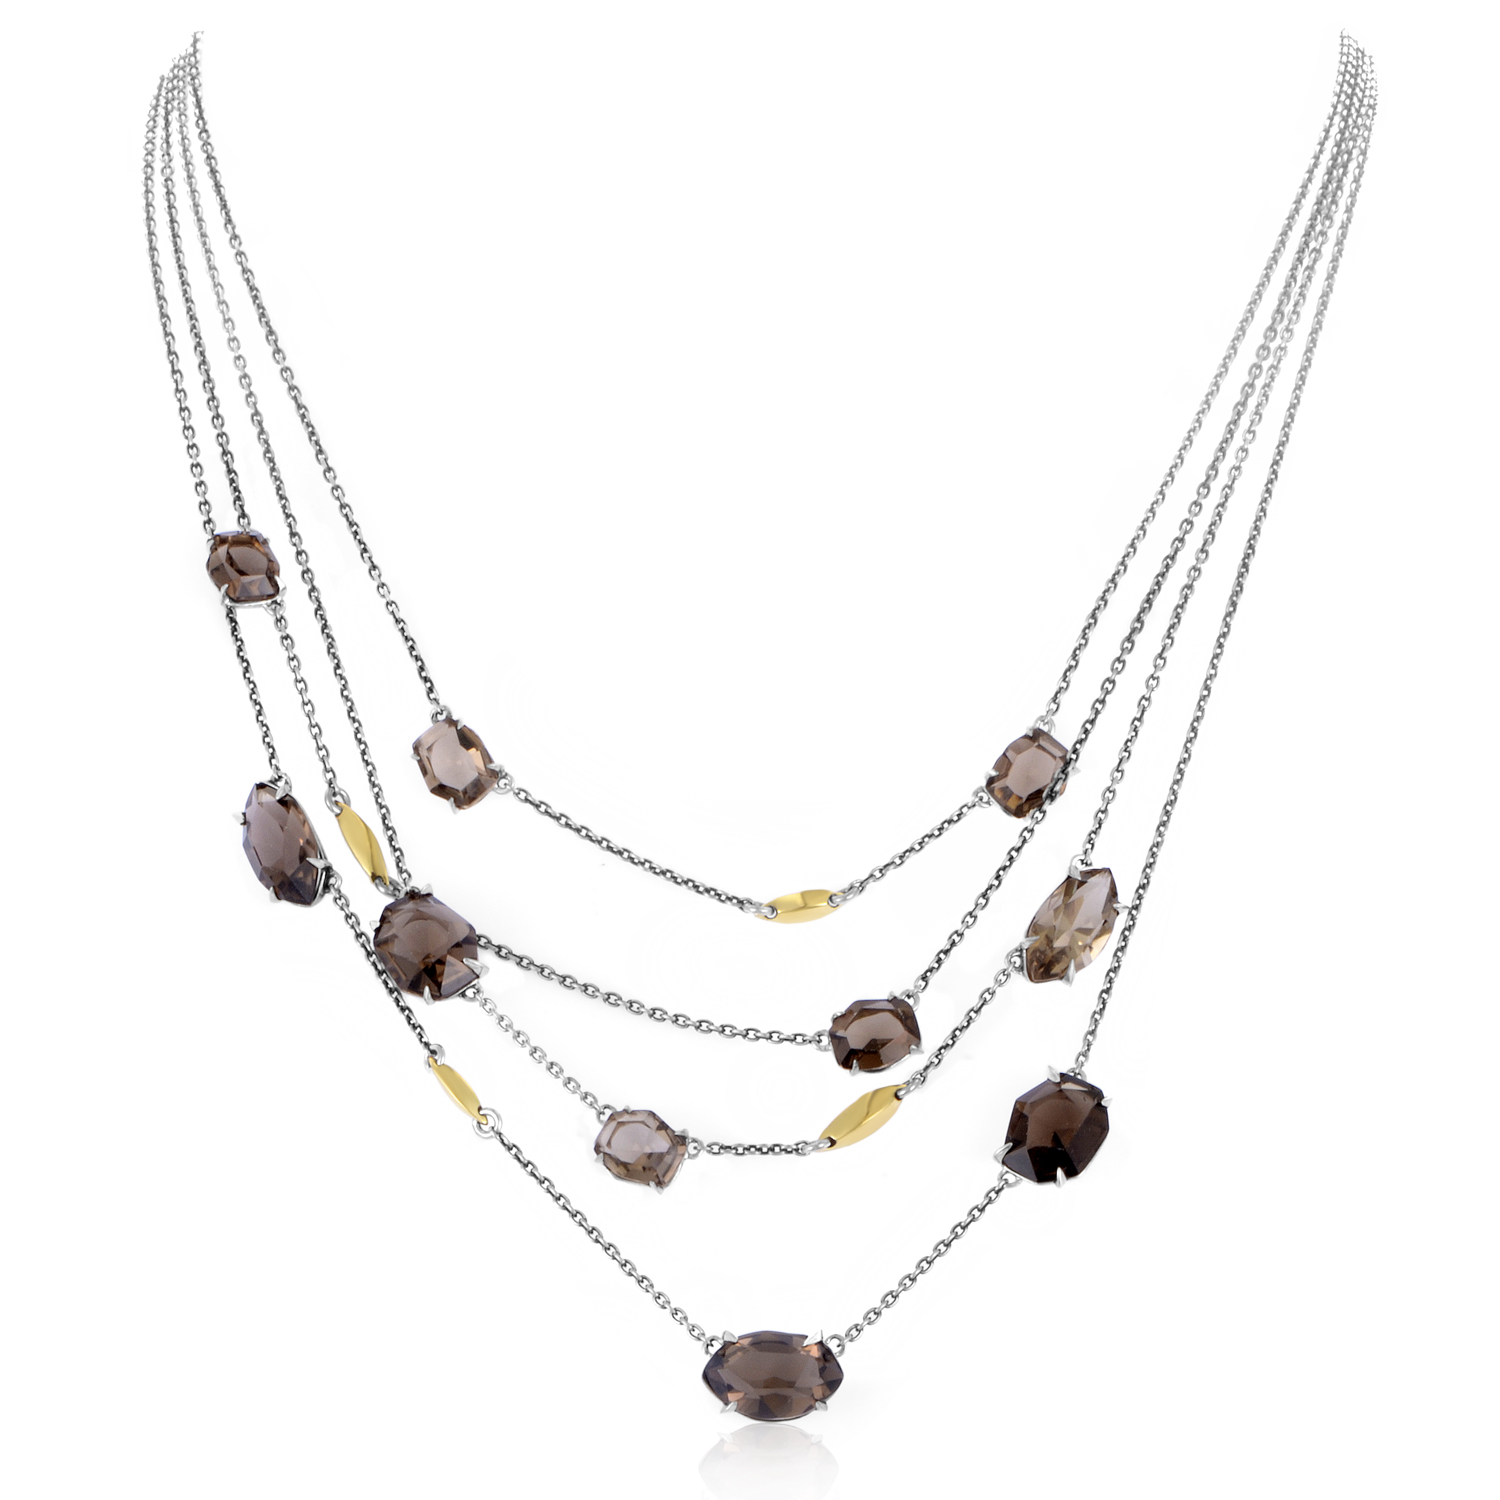 Women's Sterling Silver & Smoky Quartz Necklace FN43N032